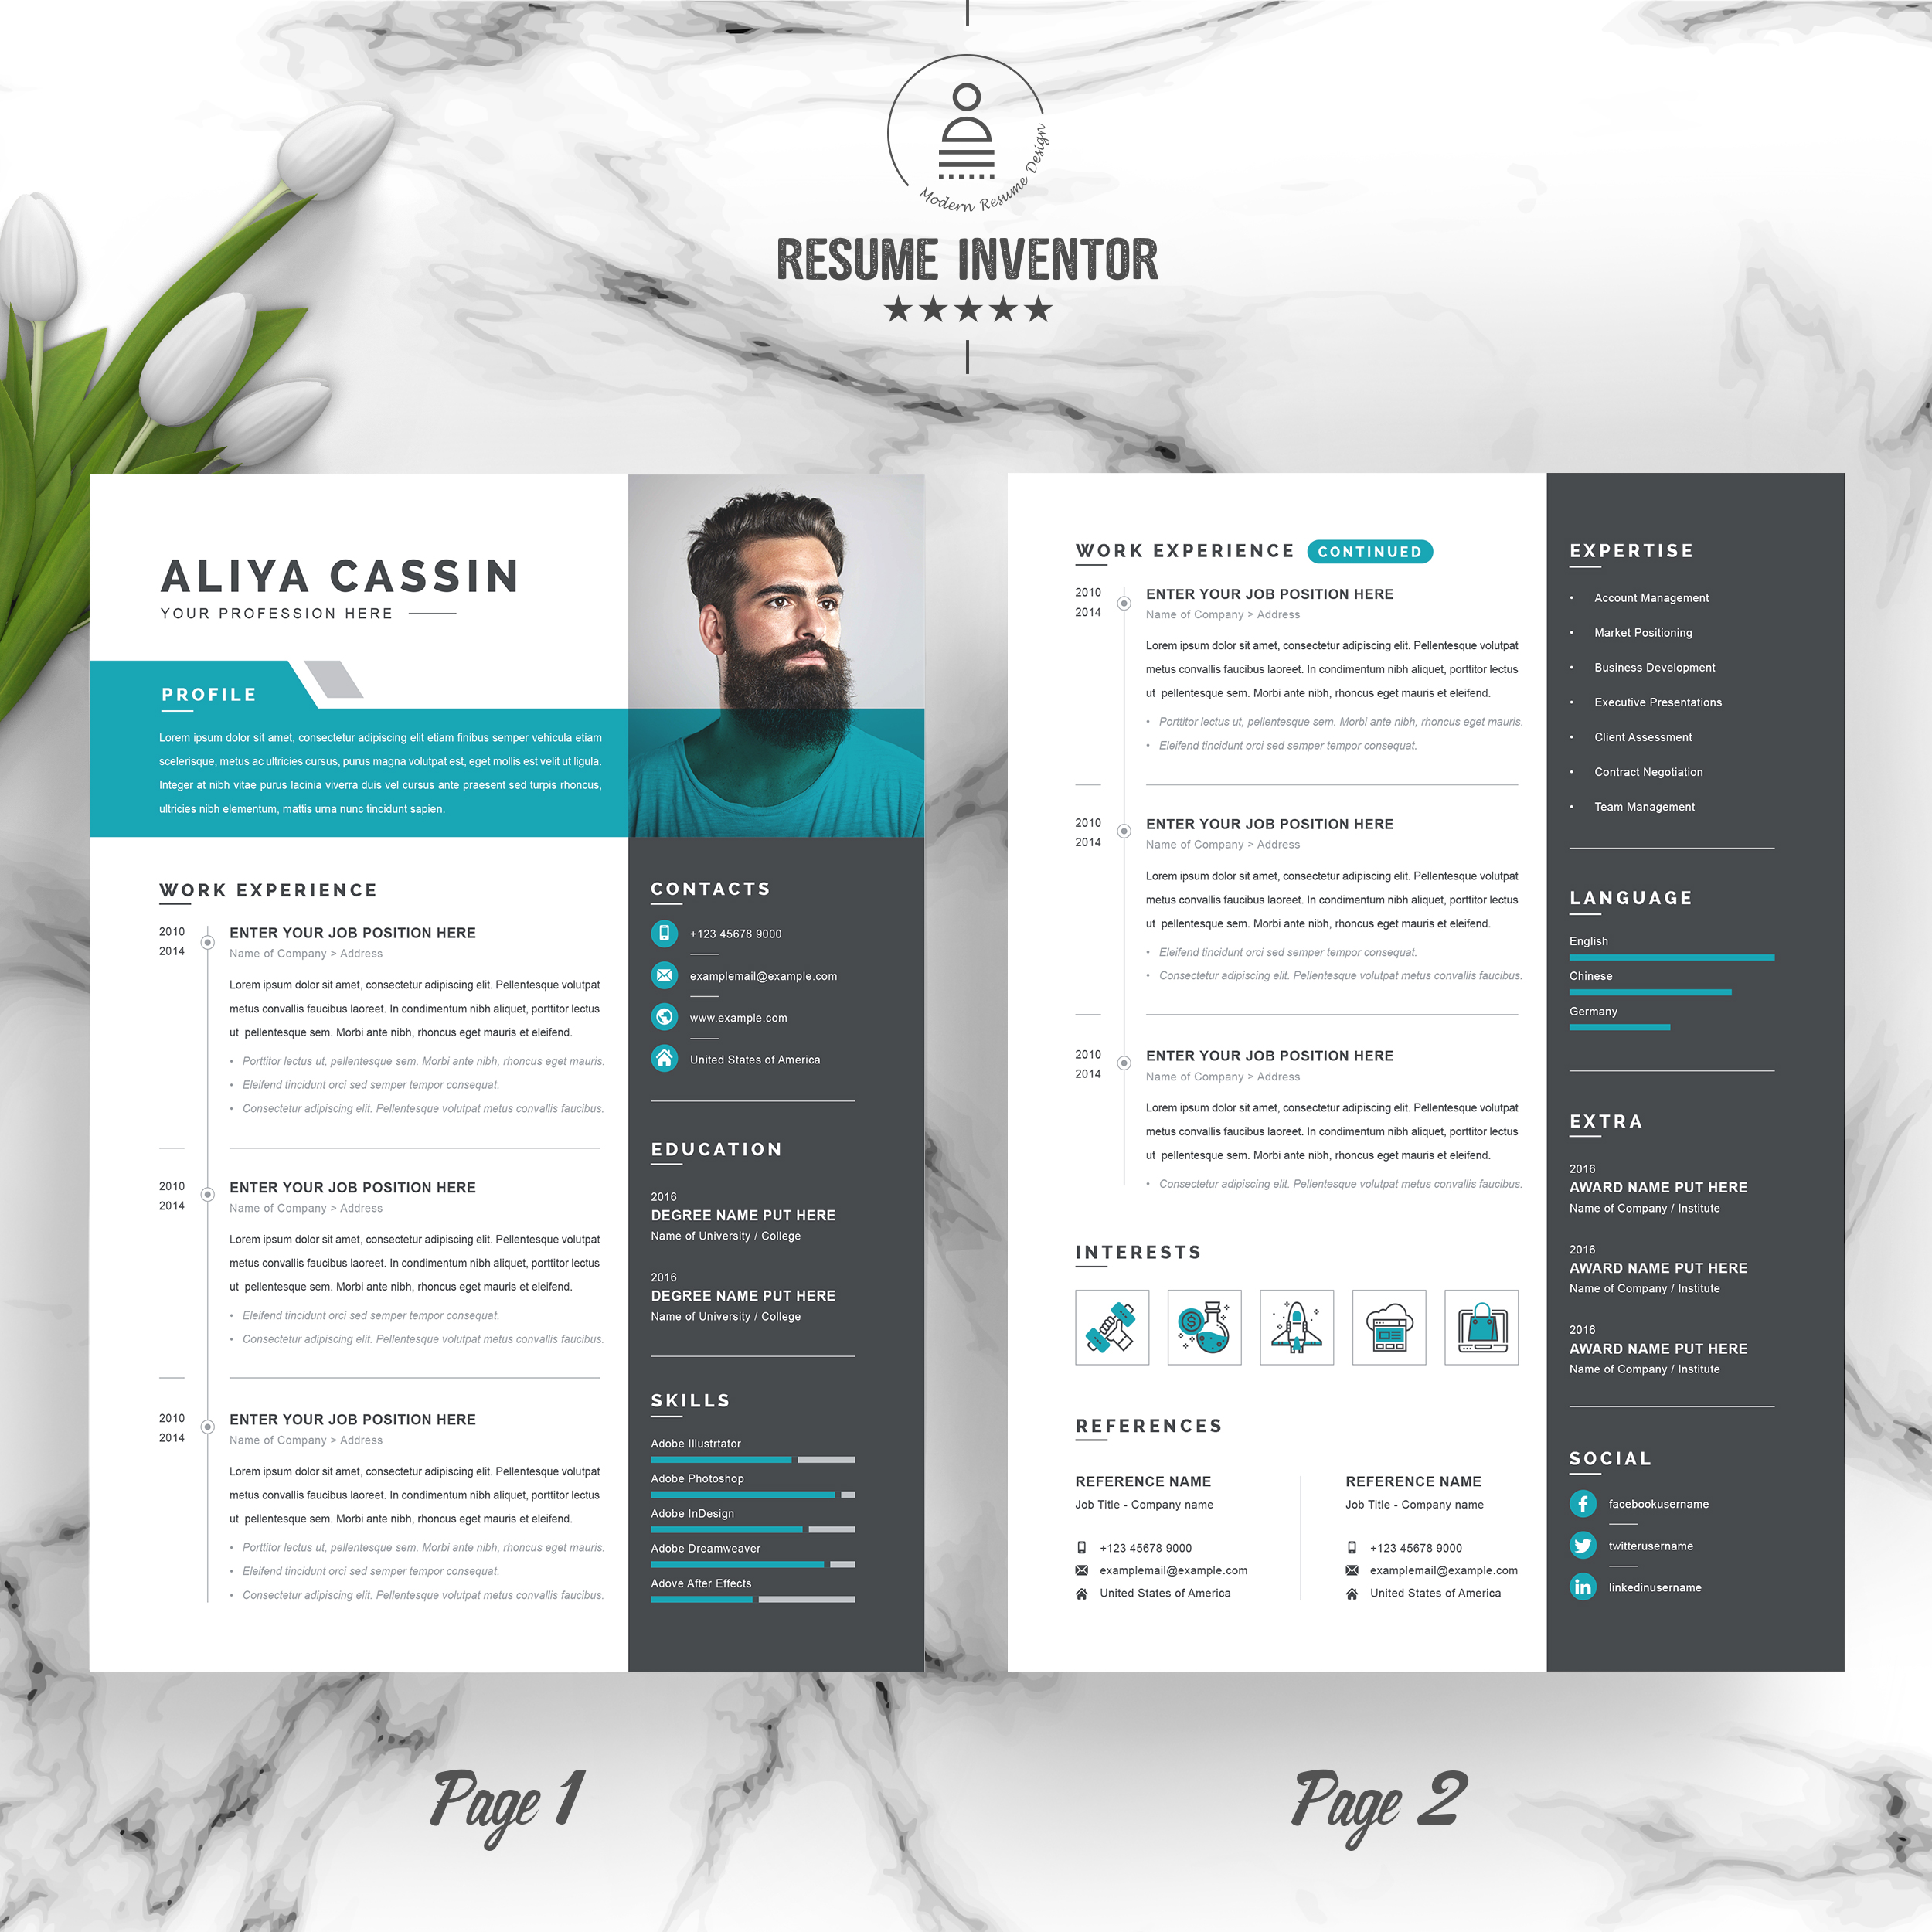 Stationery Poster Template Curriculum Vitae: Professional Resume / CV Template With MS Word Cover